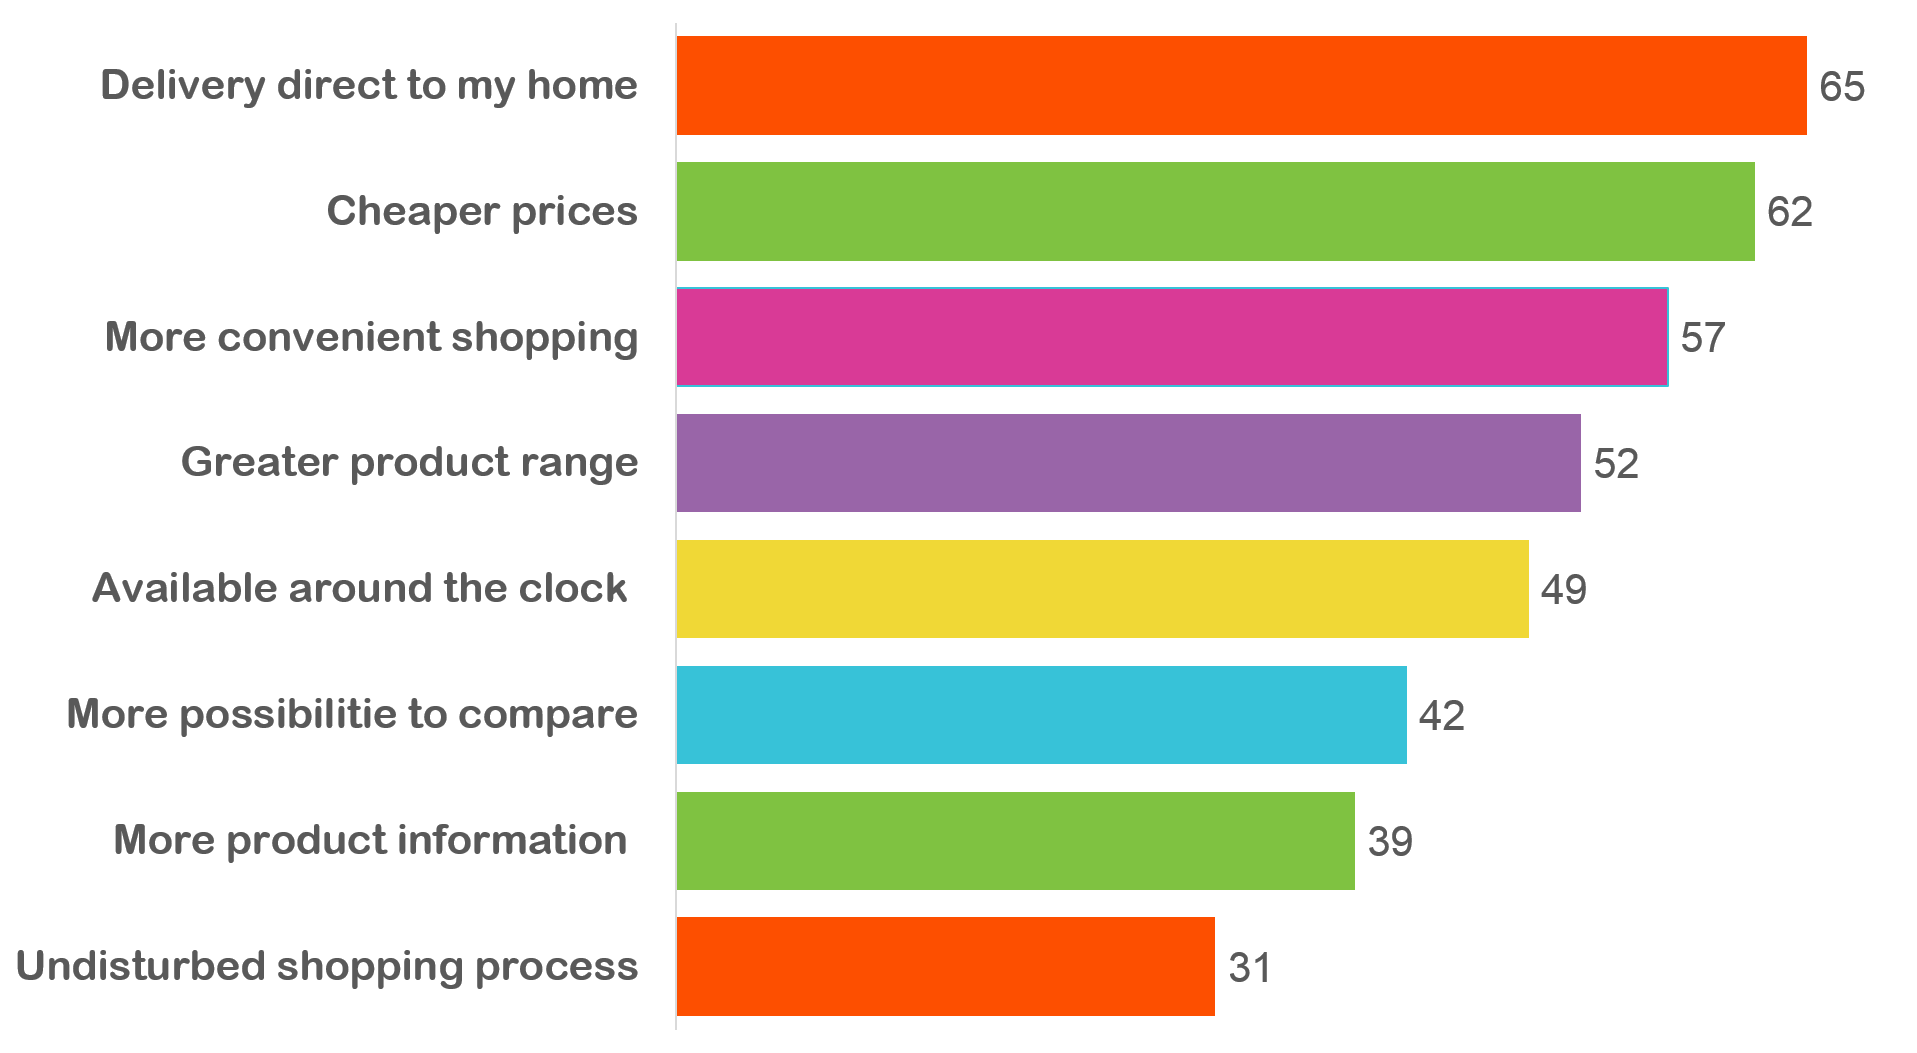 Reasons for change in shopping to online - Parcel Tracking.png